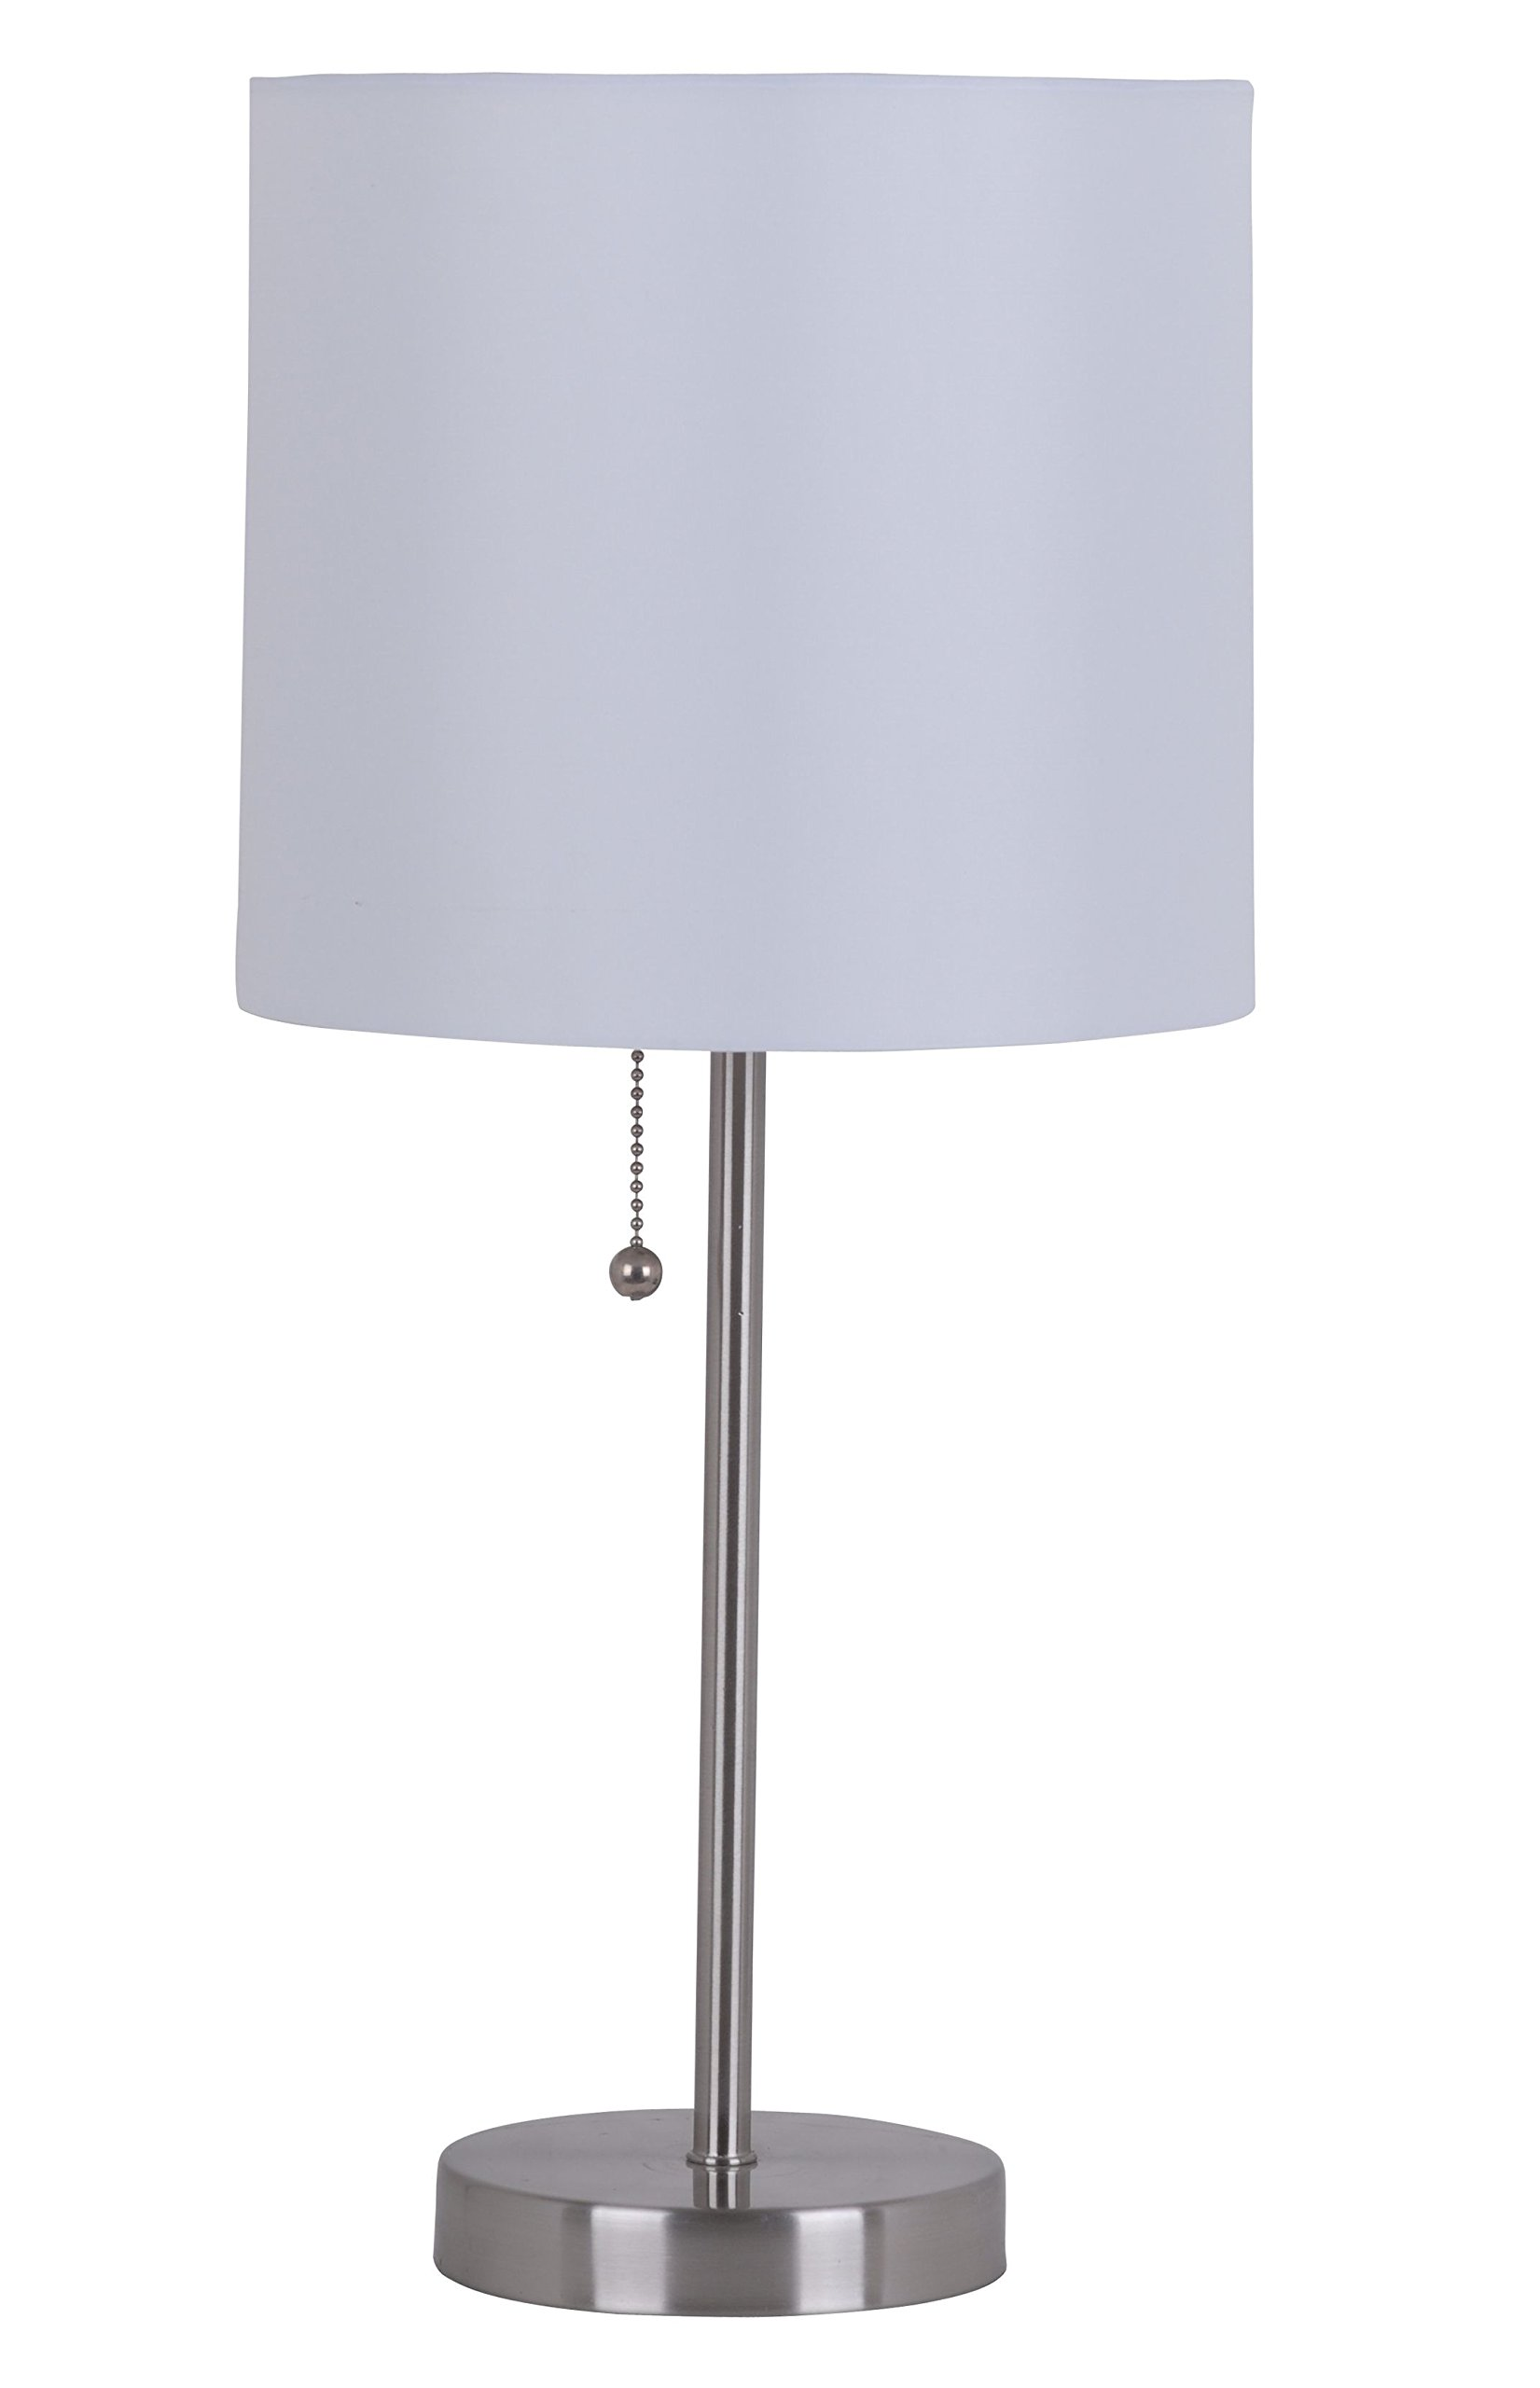 Catalina Lighting 17842-030 Jayden Metal Stick, Table lamp, Brushed Steel